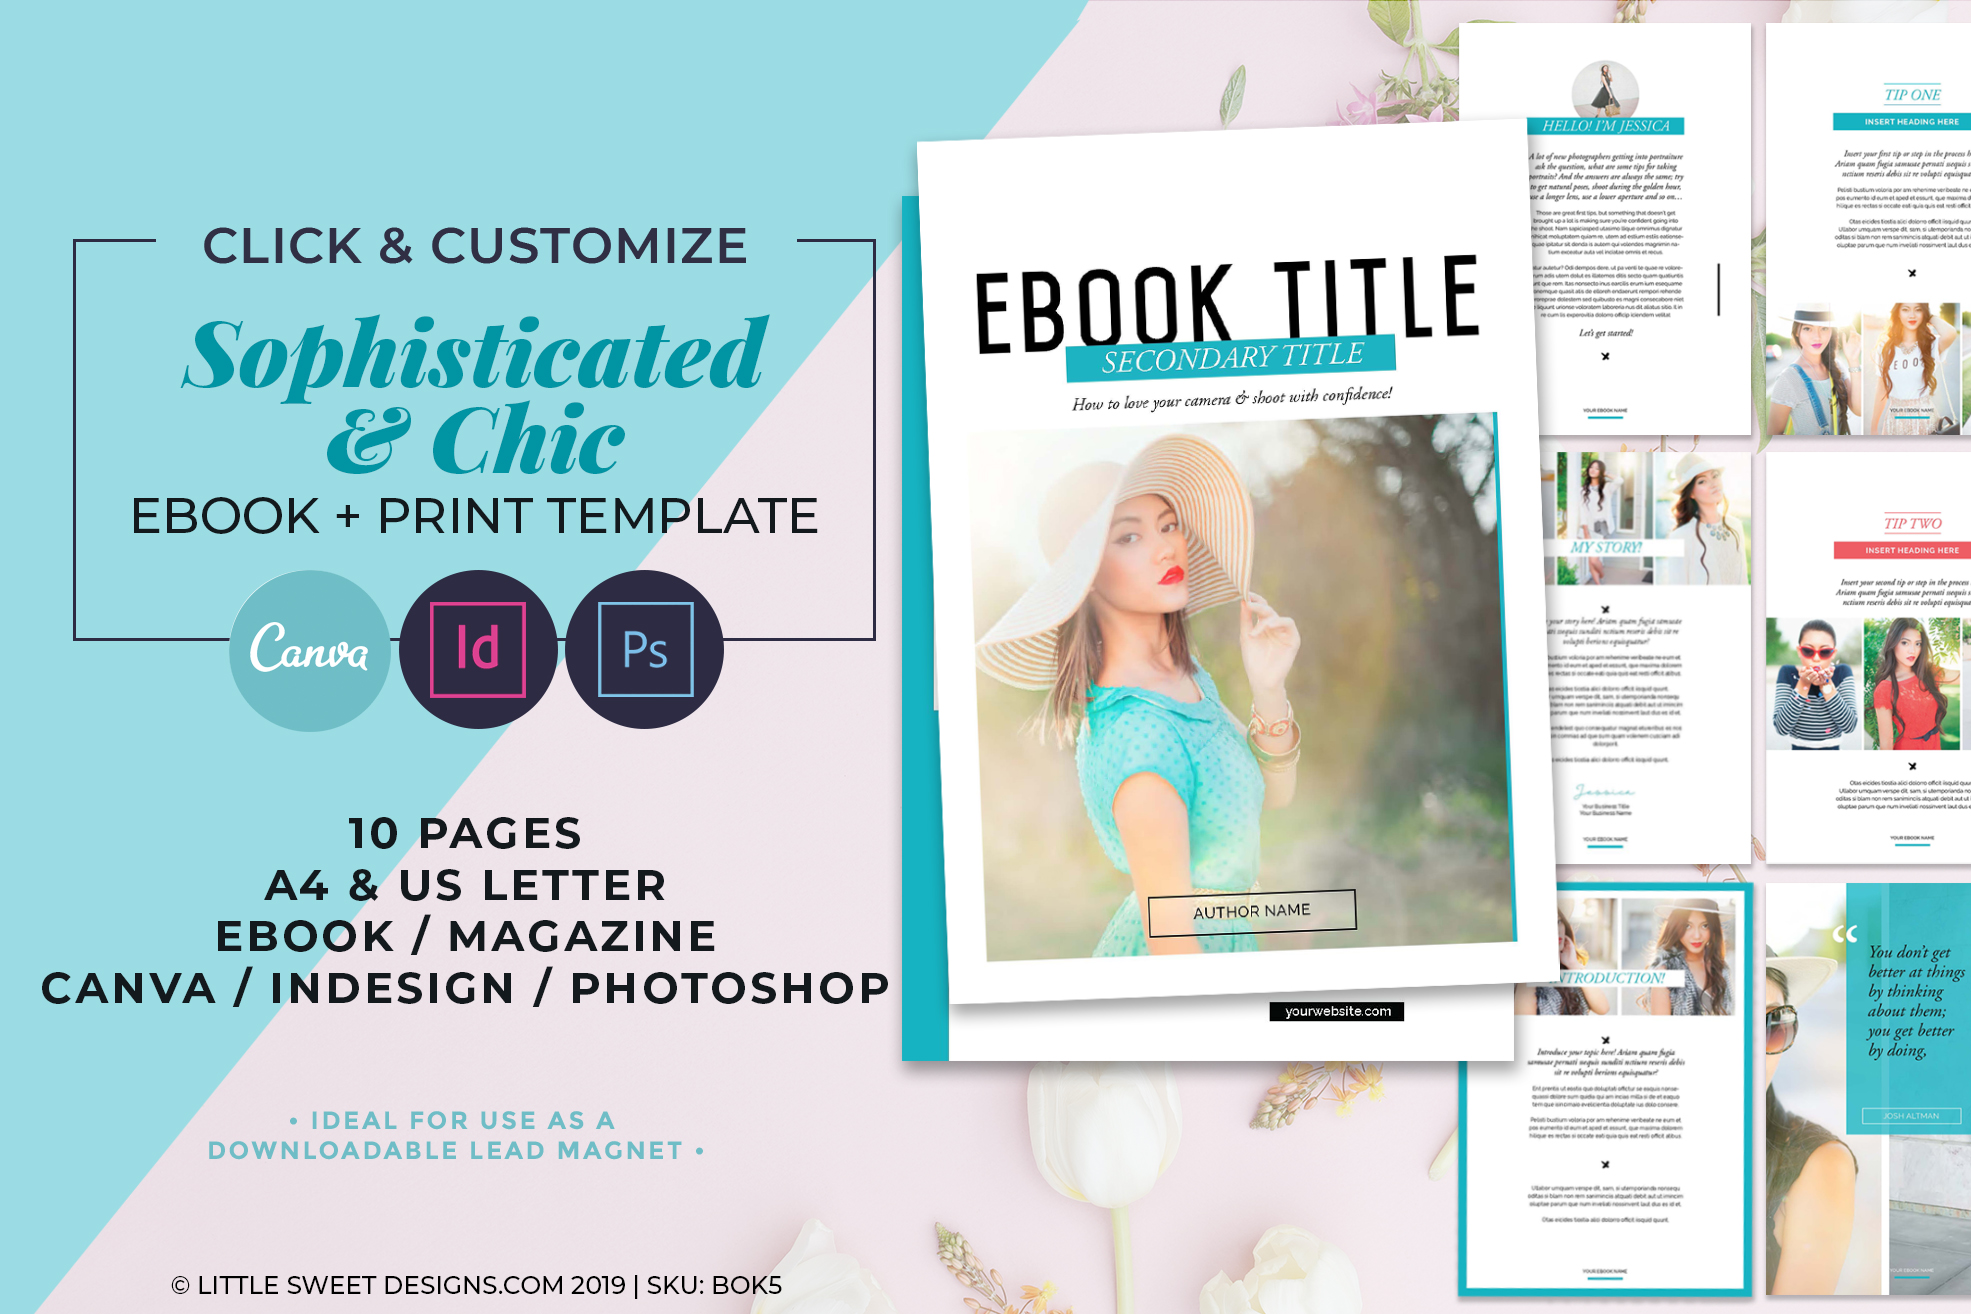 LittleSweetDesigns-BOK5-K-eBook.jpg